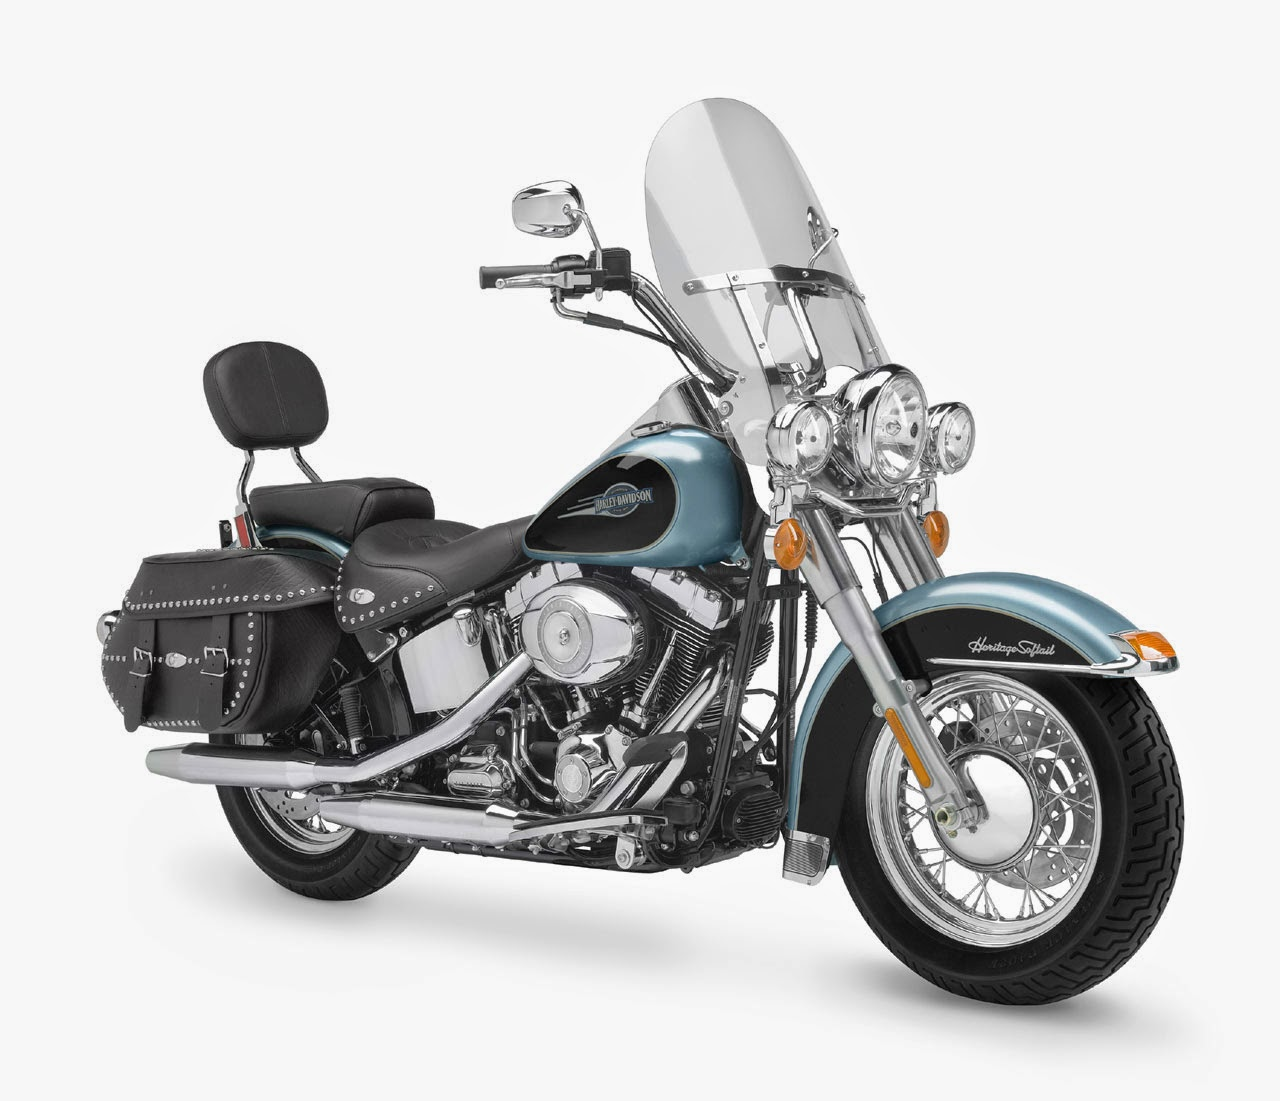 harley davidson softail owner s manual 2007 rh harley manuals cc 2005 harley davidson sportster service manual free download 2005 harley davidson sportster 883 owners manual